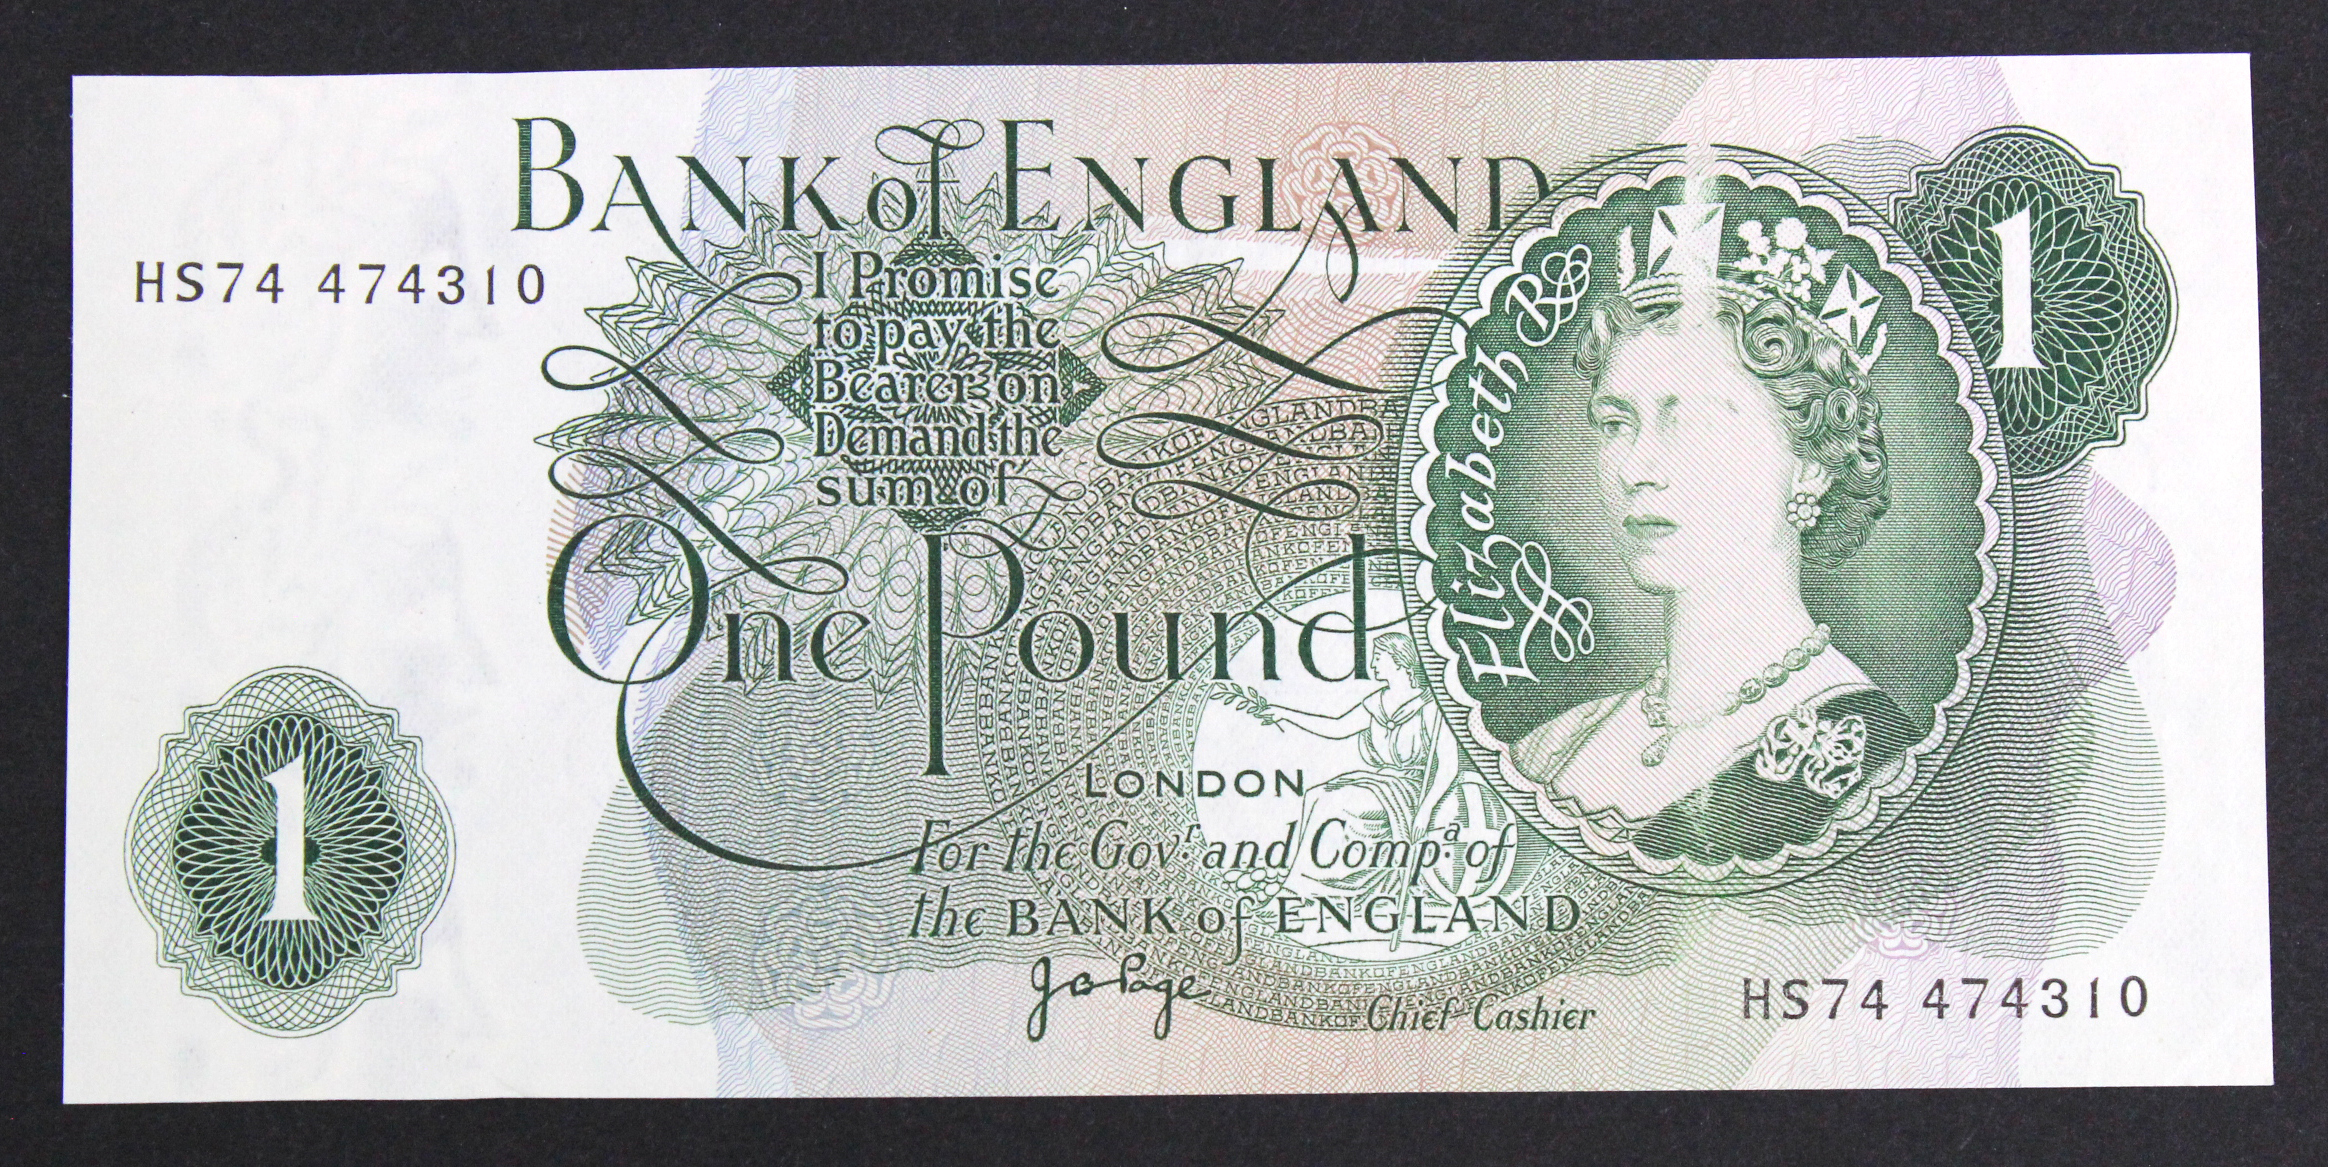 ERROR Page 1 Pound issued 1970, print flaw part of Queens portrait missing/smudged, serial HS74